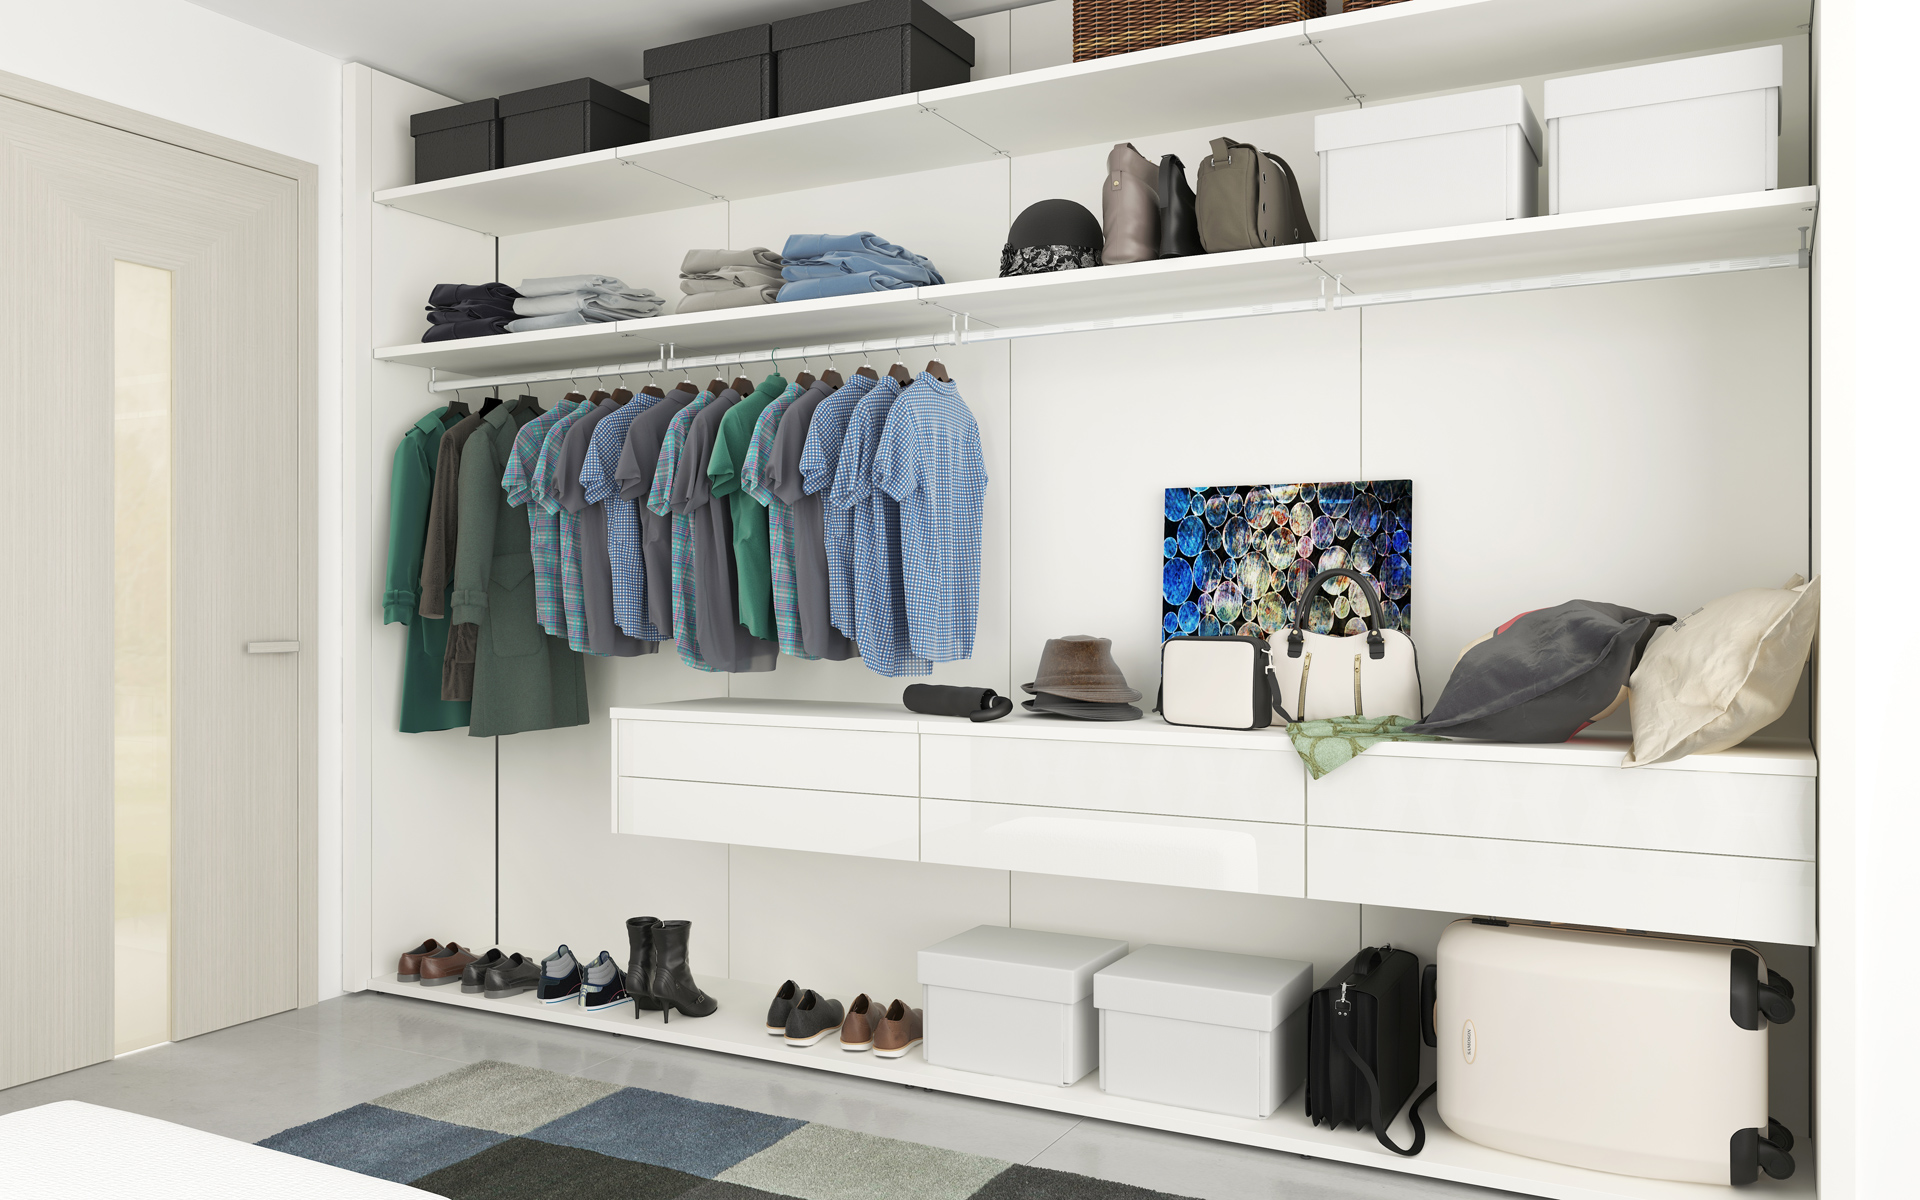 CASA closet system with backs